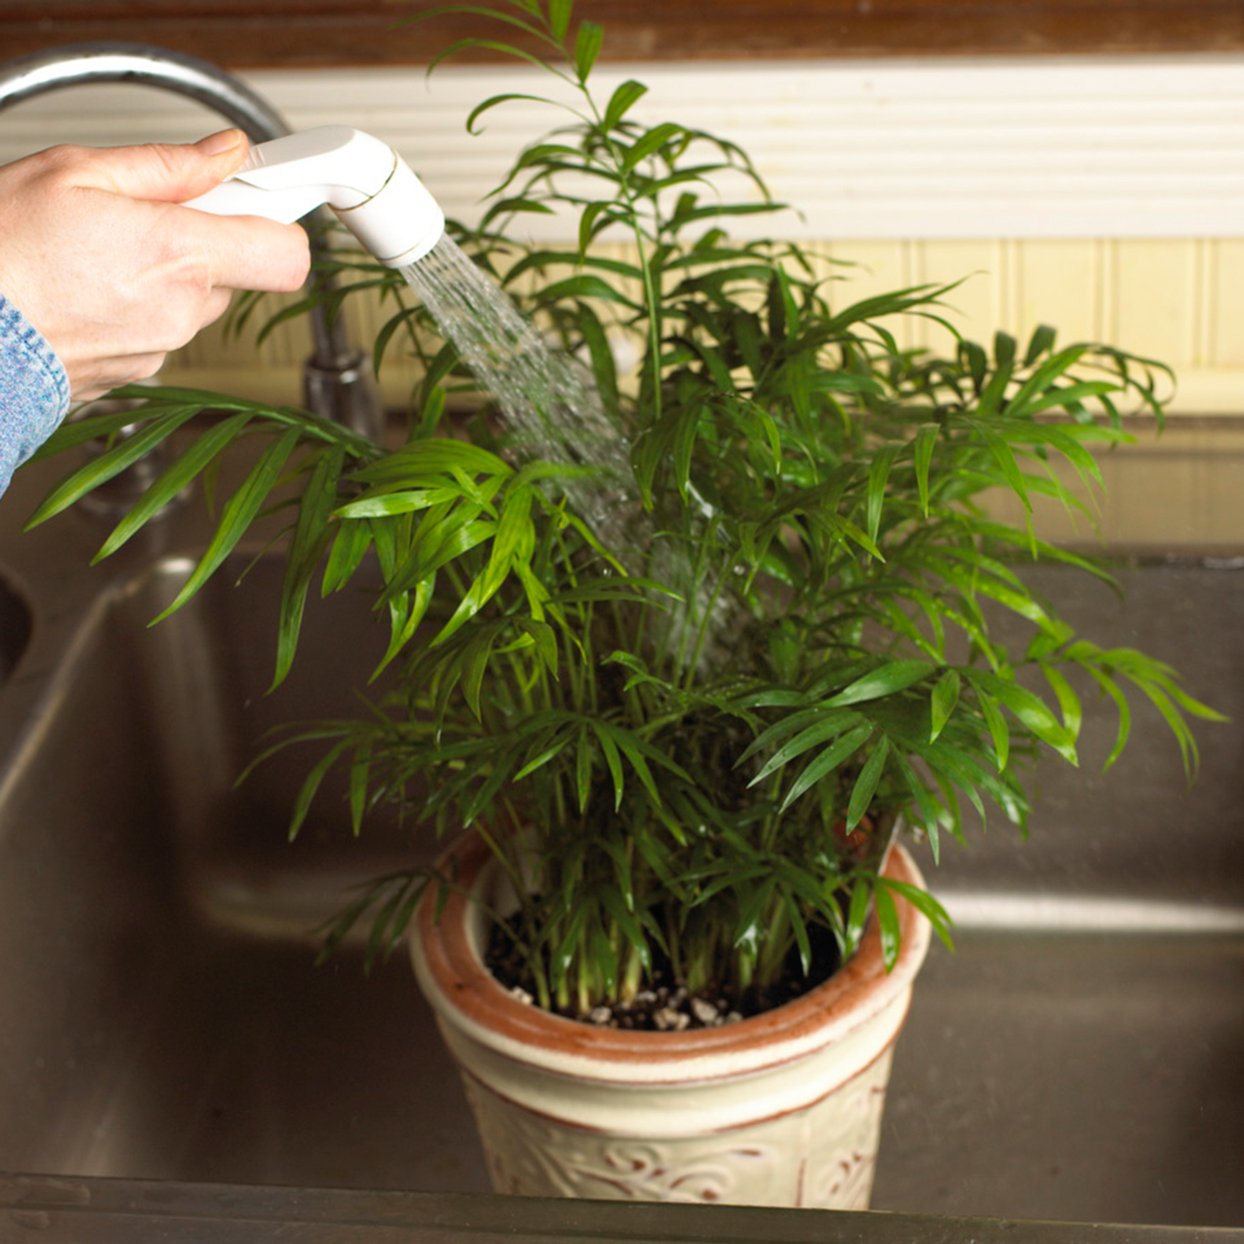 washing houseplant in sink with faucet